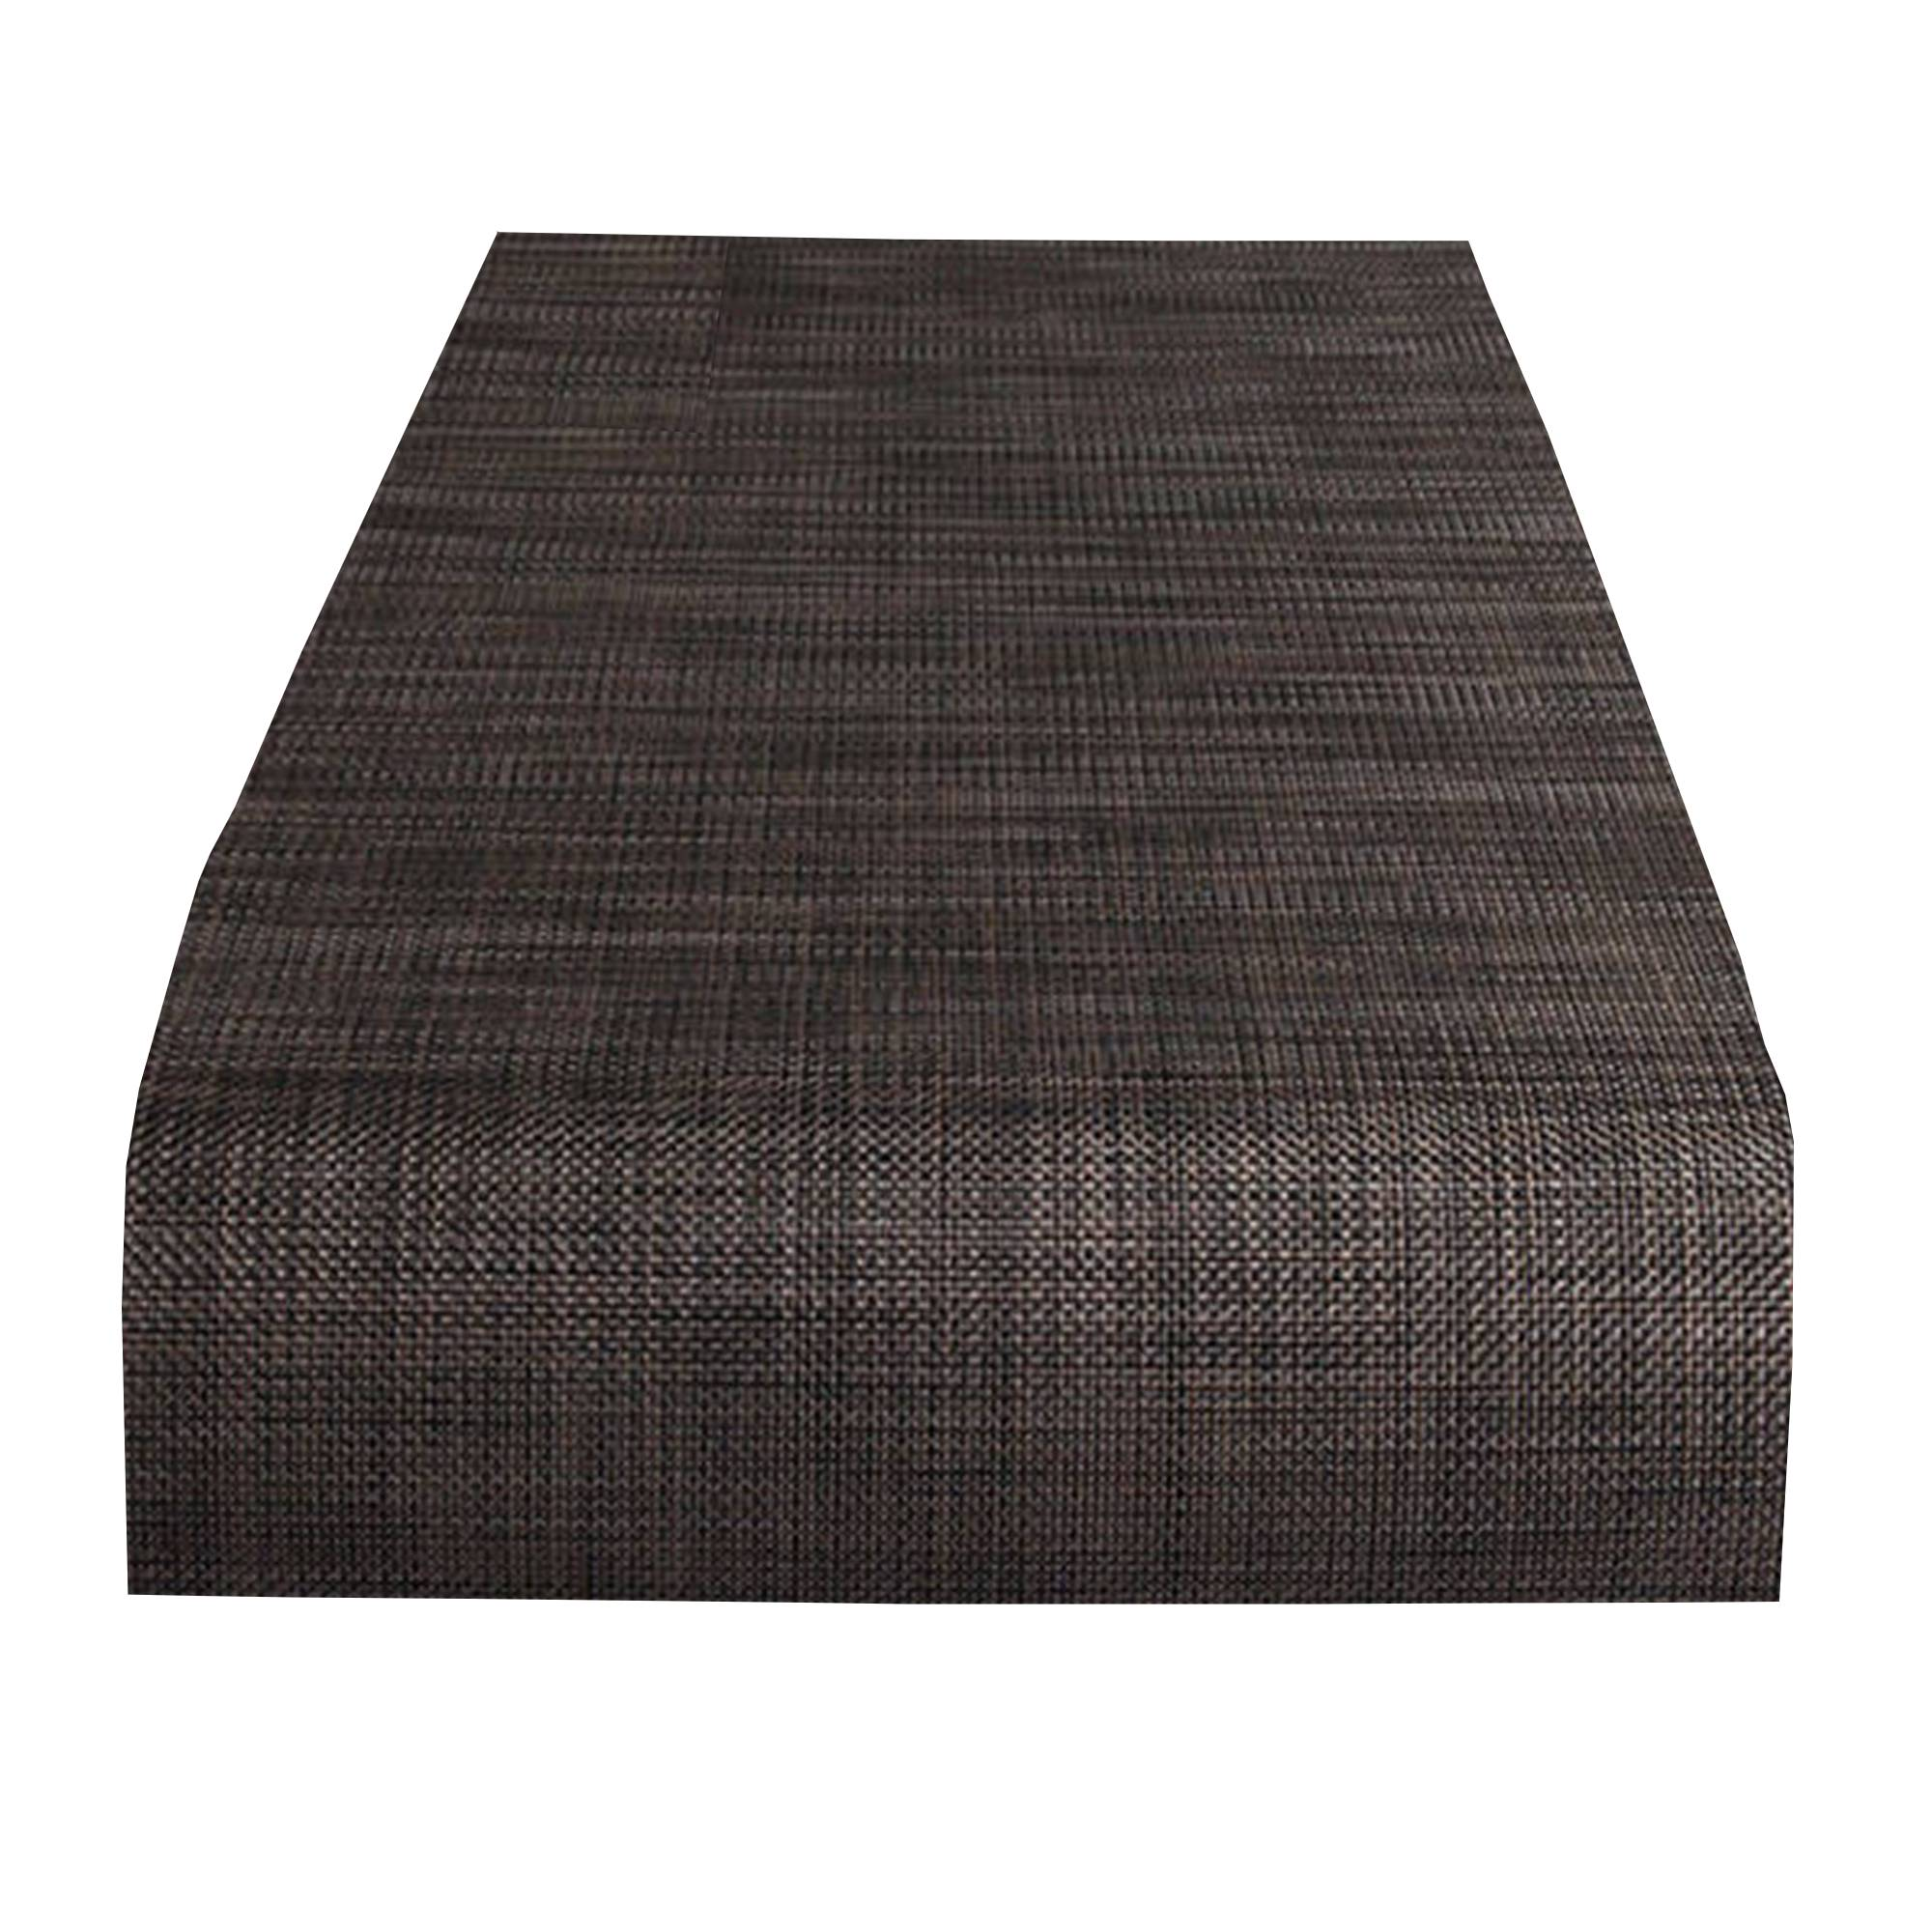 Mini Basketweave Table Runner: Dark Walnut